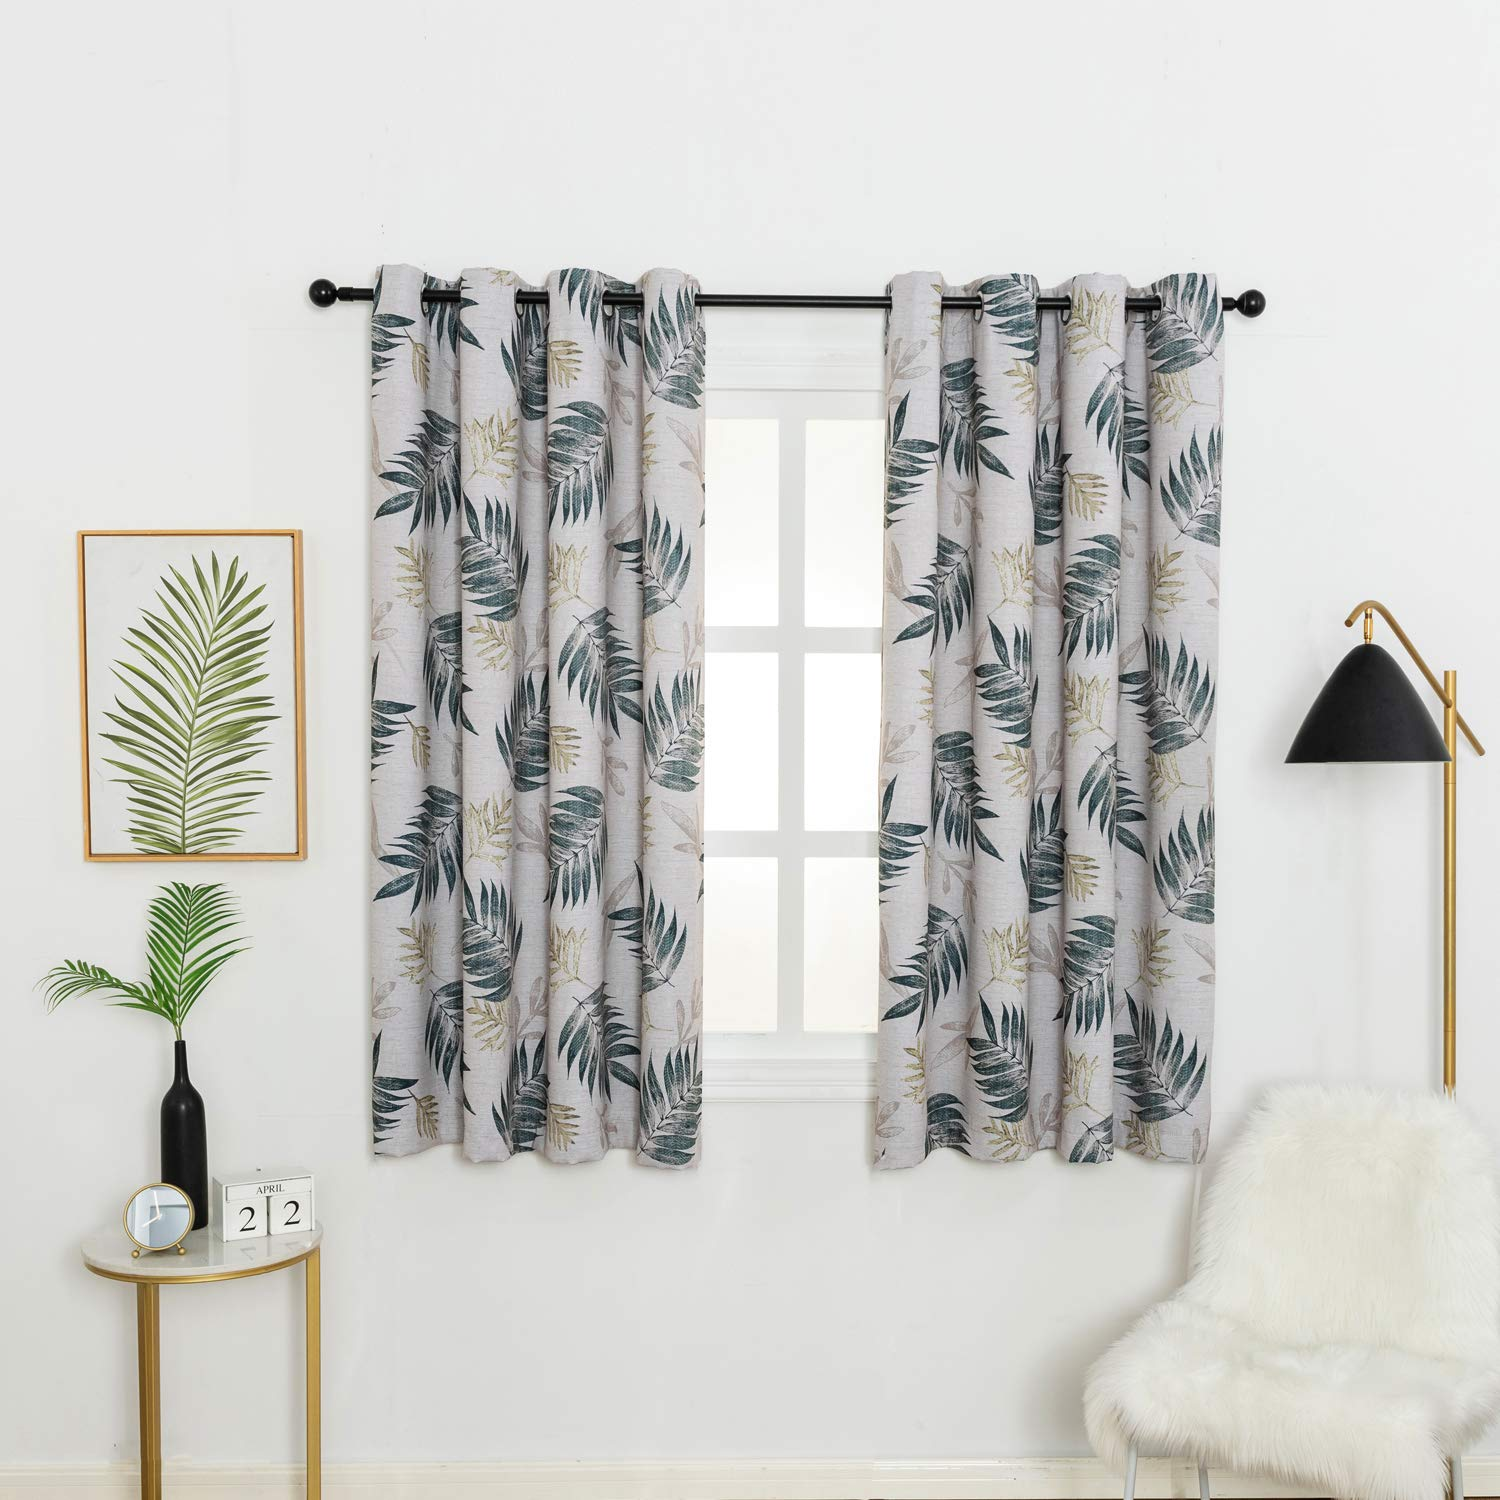 Anjee Print Blackout Curtains Drapes for Dining Room, Nordic Style Green Leaf Topic Kitchen Curtains(1 Pair, 63 Inch Length) by Anjee